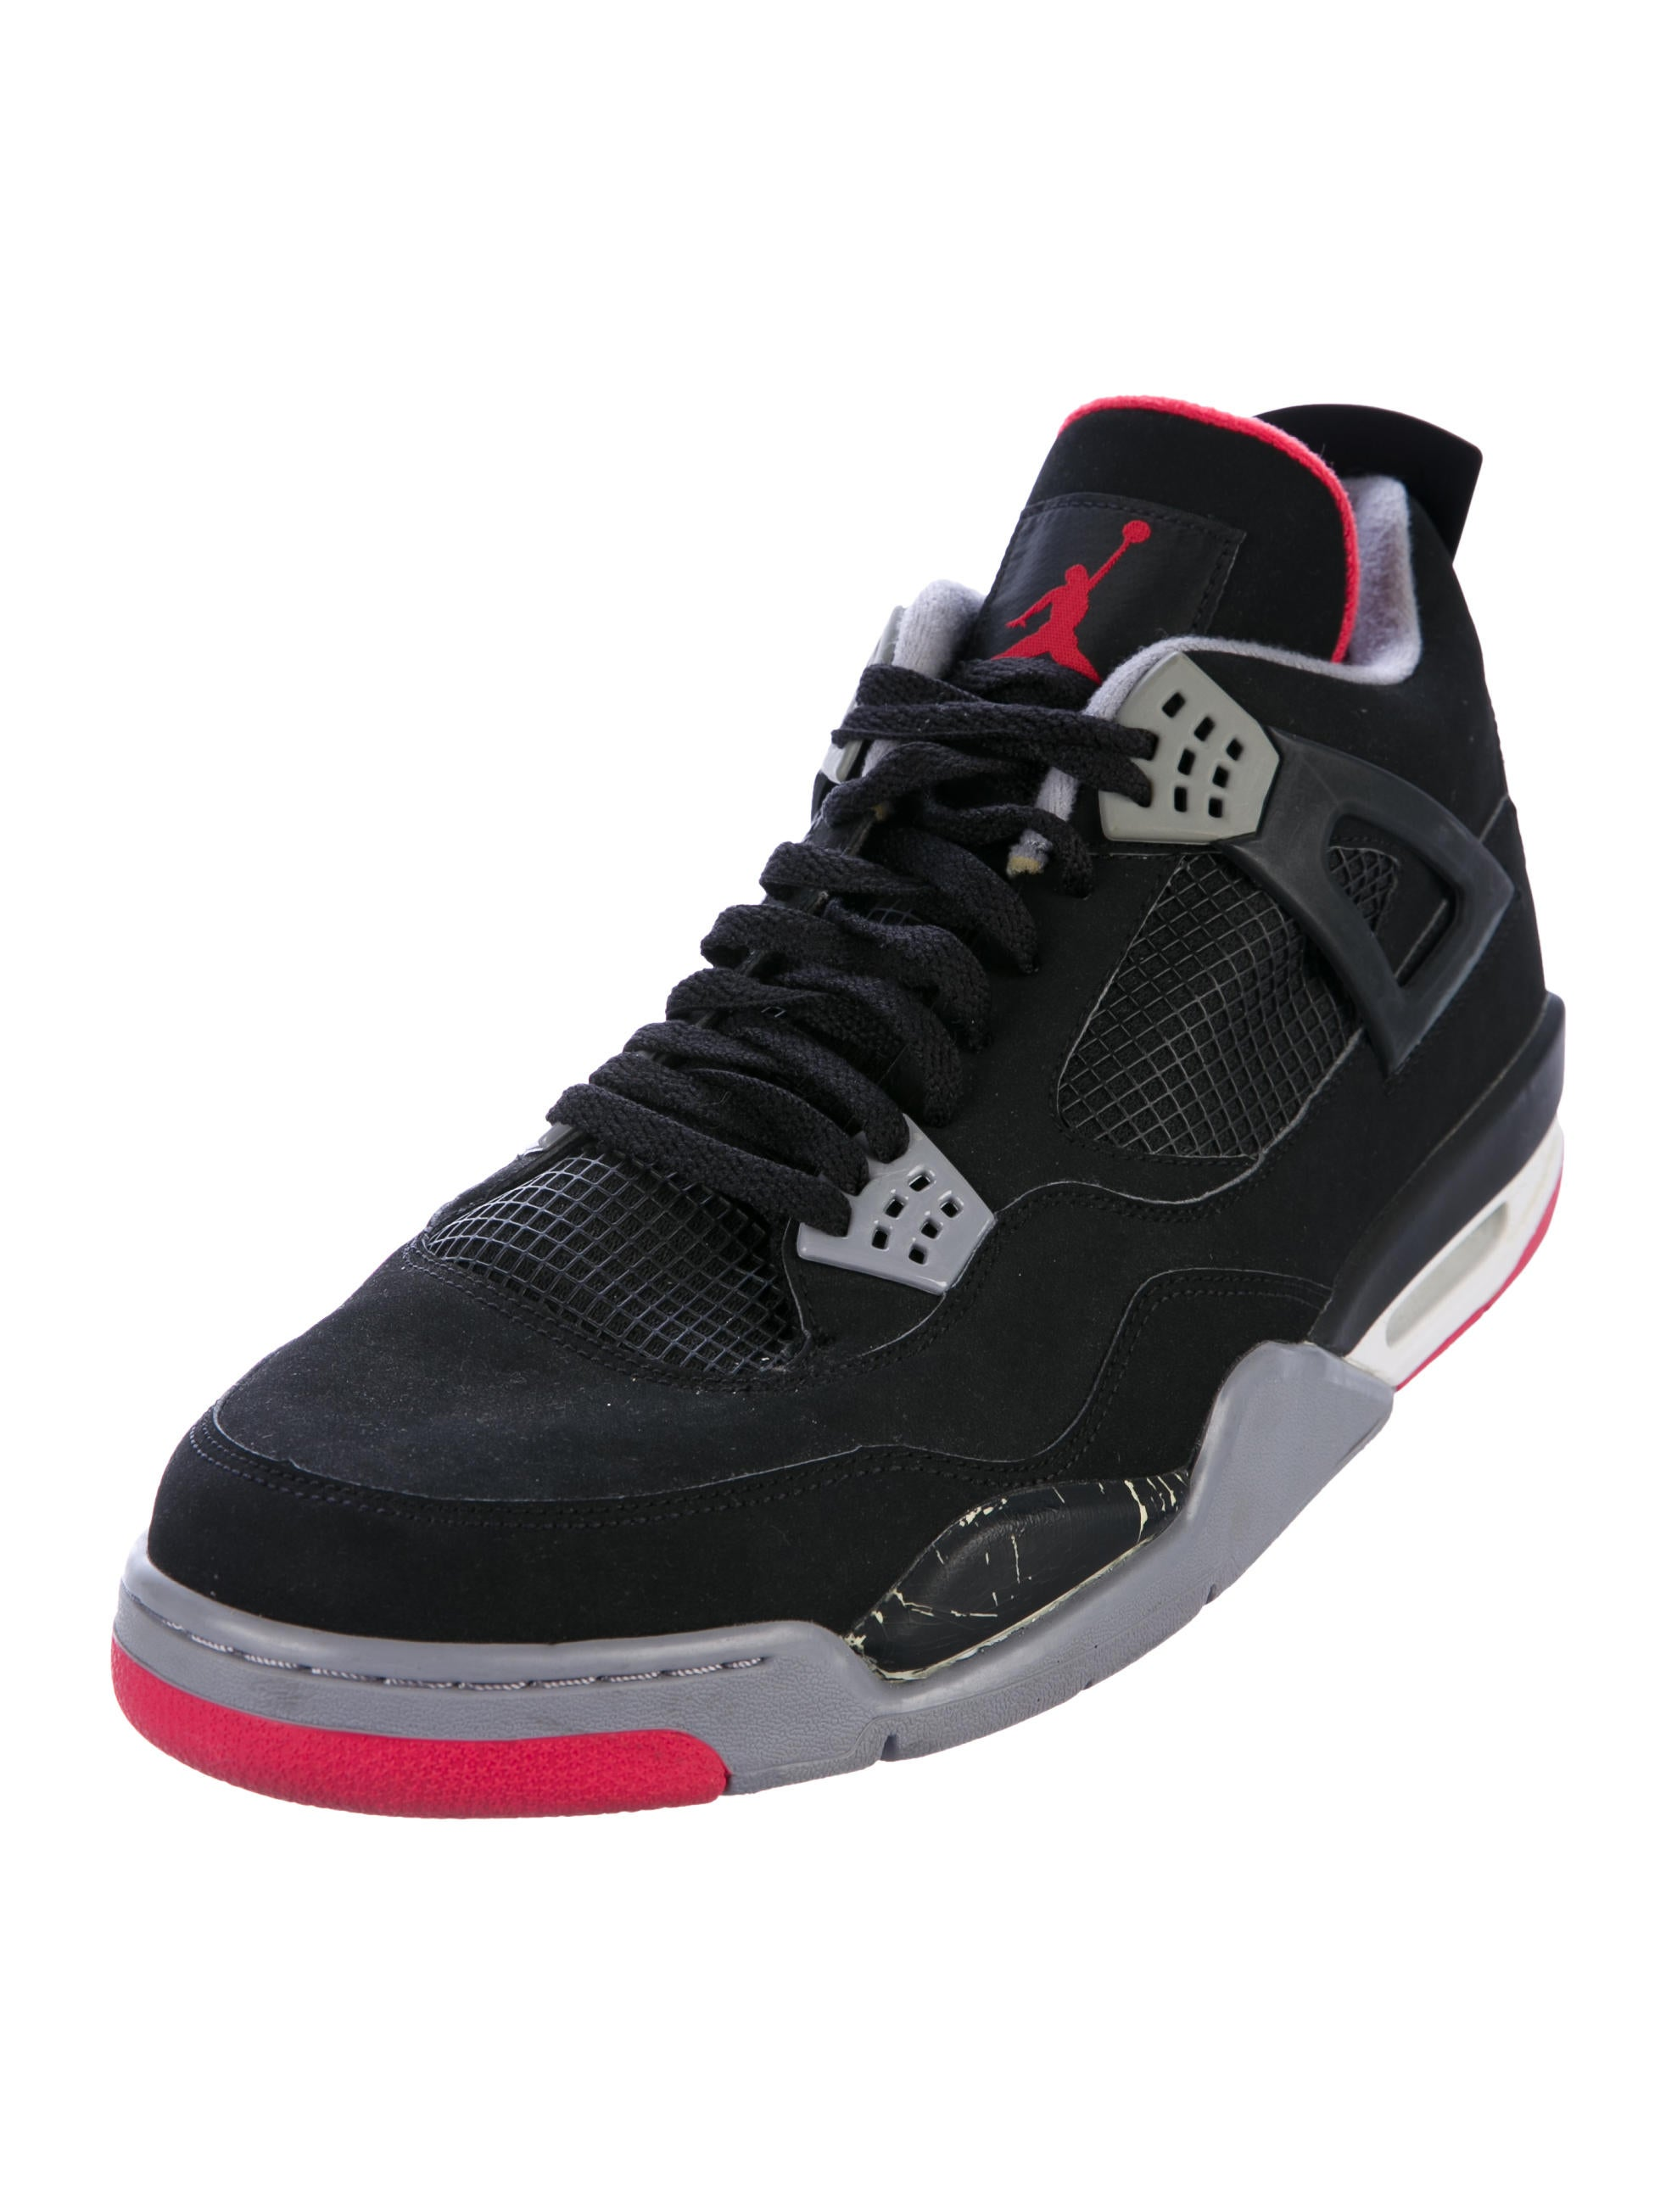 nike air jordan 4 retro cdp sneakers shoes wniaj20409. Black Bedroom Furniture Sets. Home Design Ideas